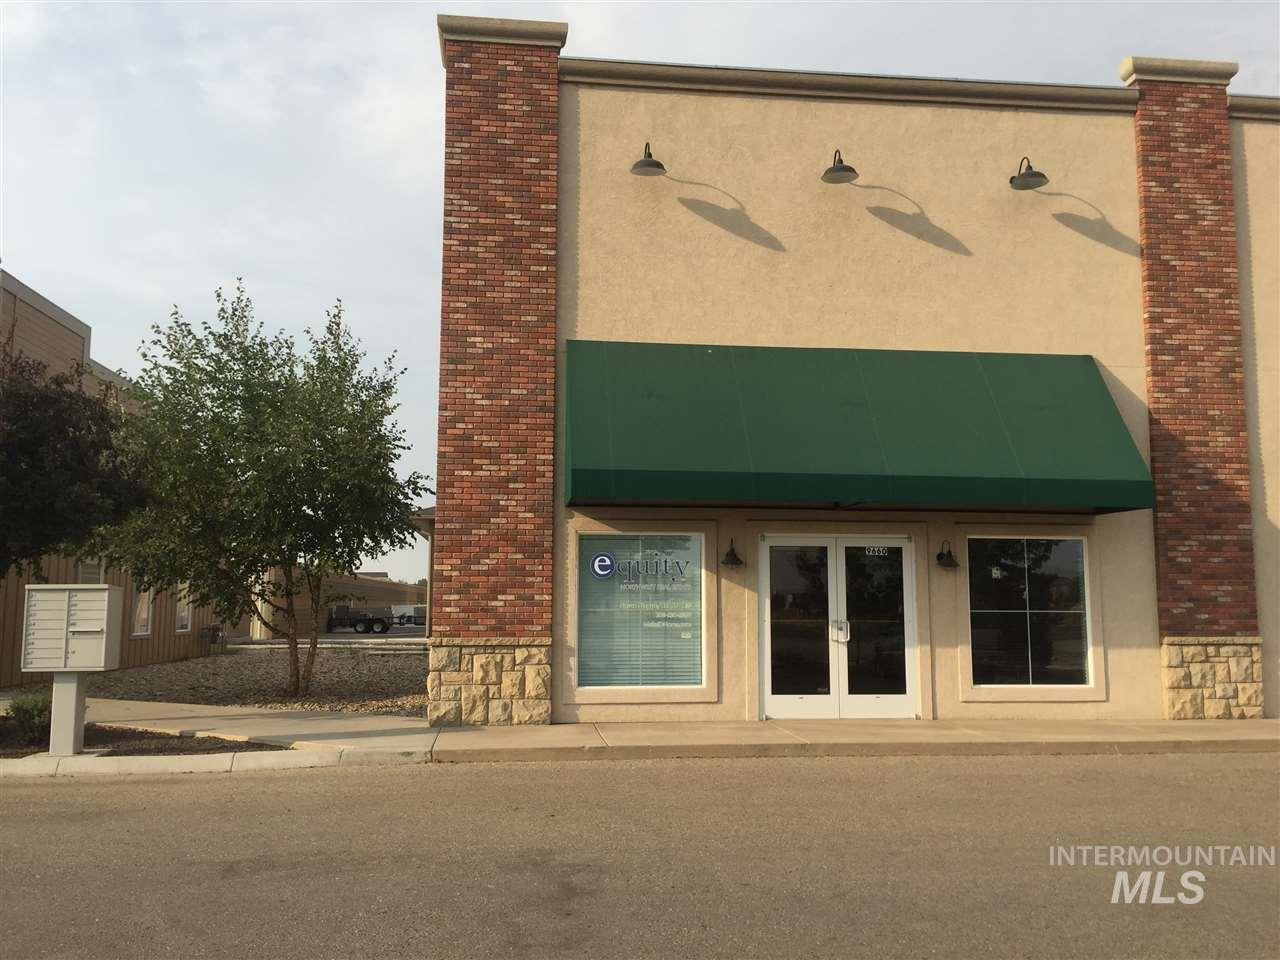 9660 W State Street, Star, Idaho 83669, Business/Commercial For Sale, Price $330,000, 98730550